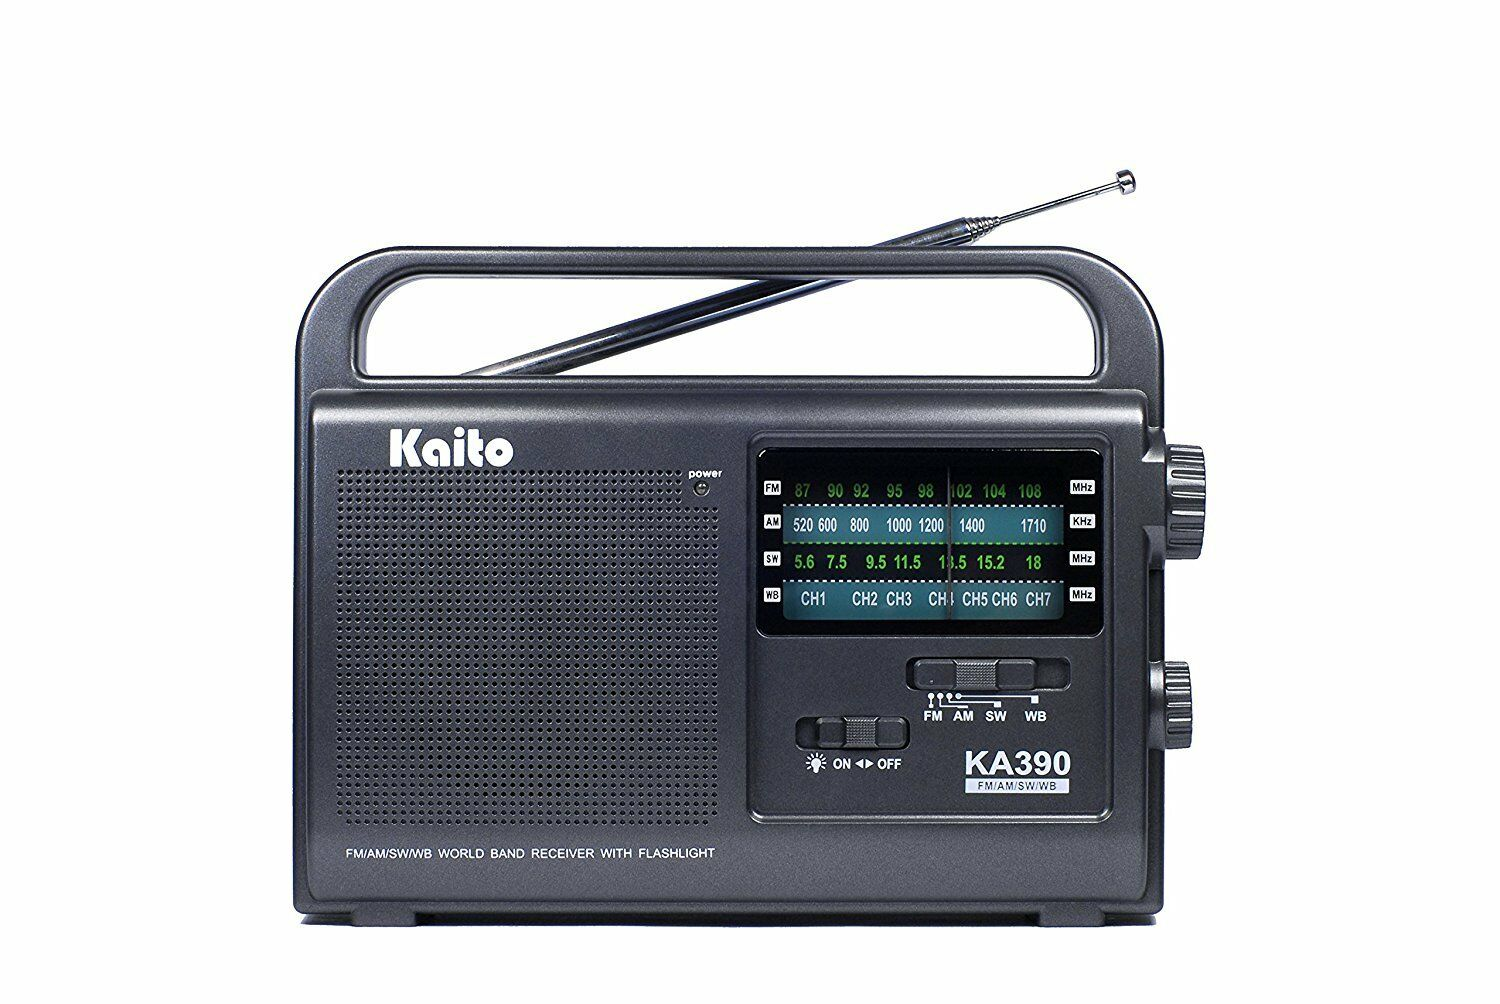 Kaito KA390 Portable AM/FM Shortwave NOAA Weather Radio with